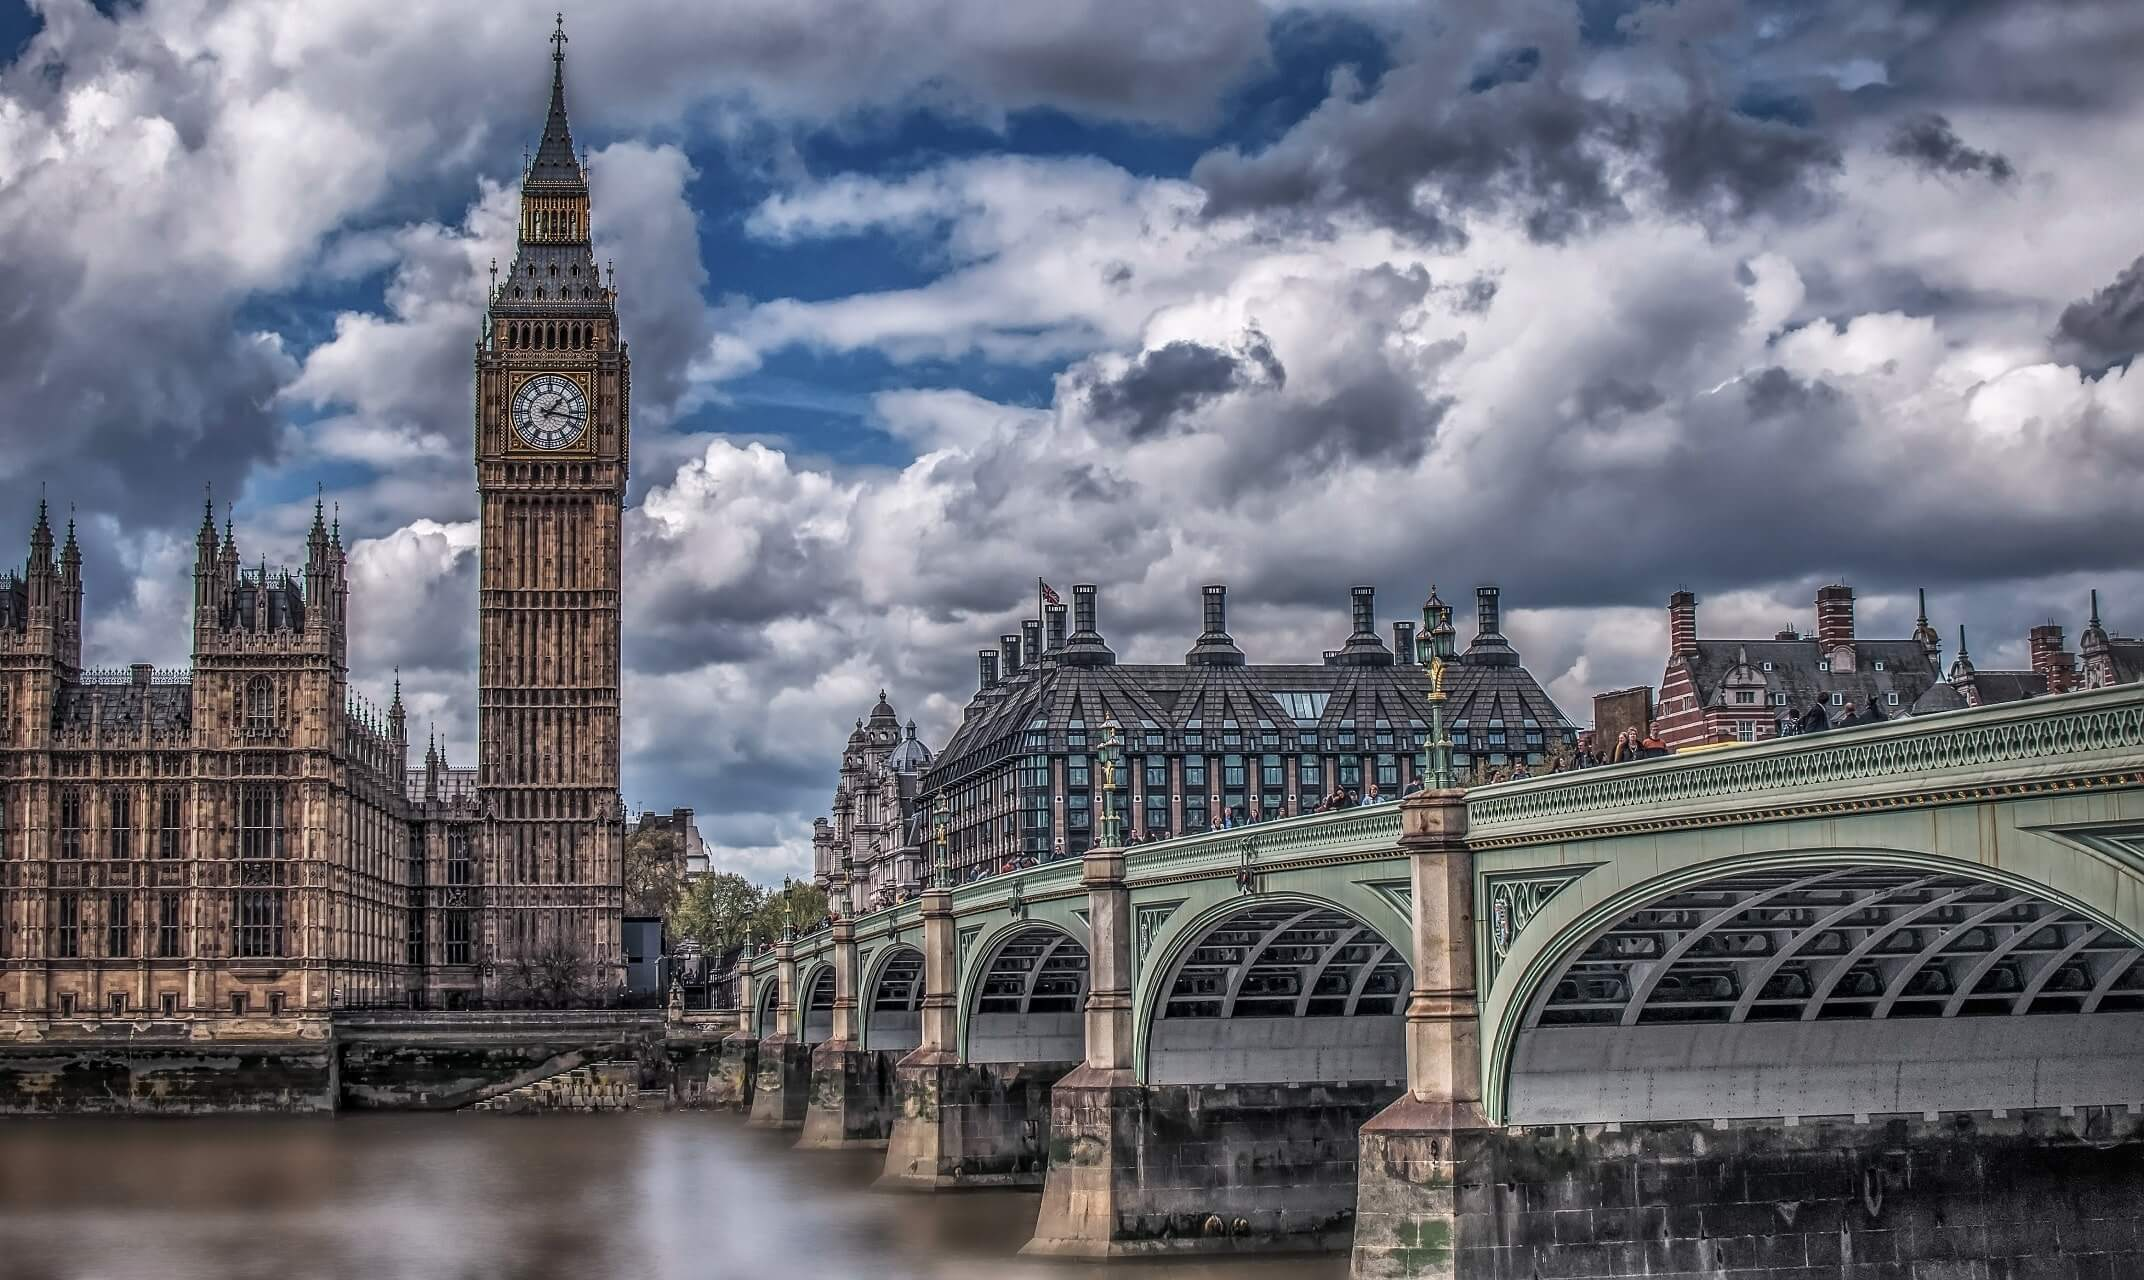 architecture-big-ben-bridge-262413 (1)